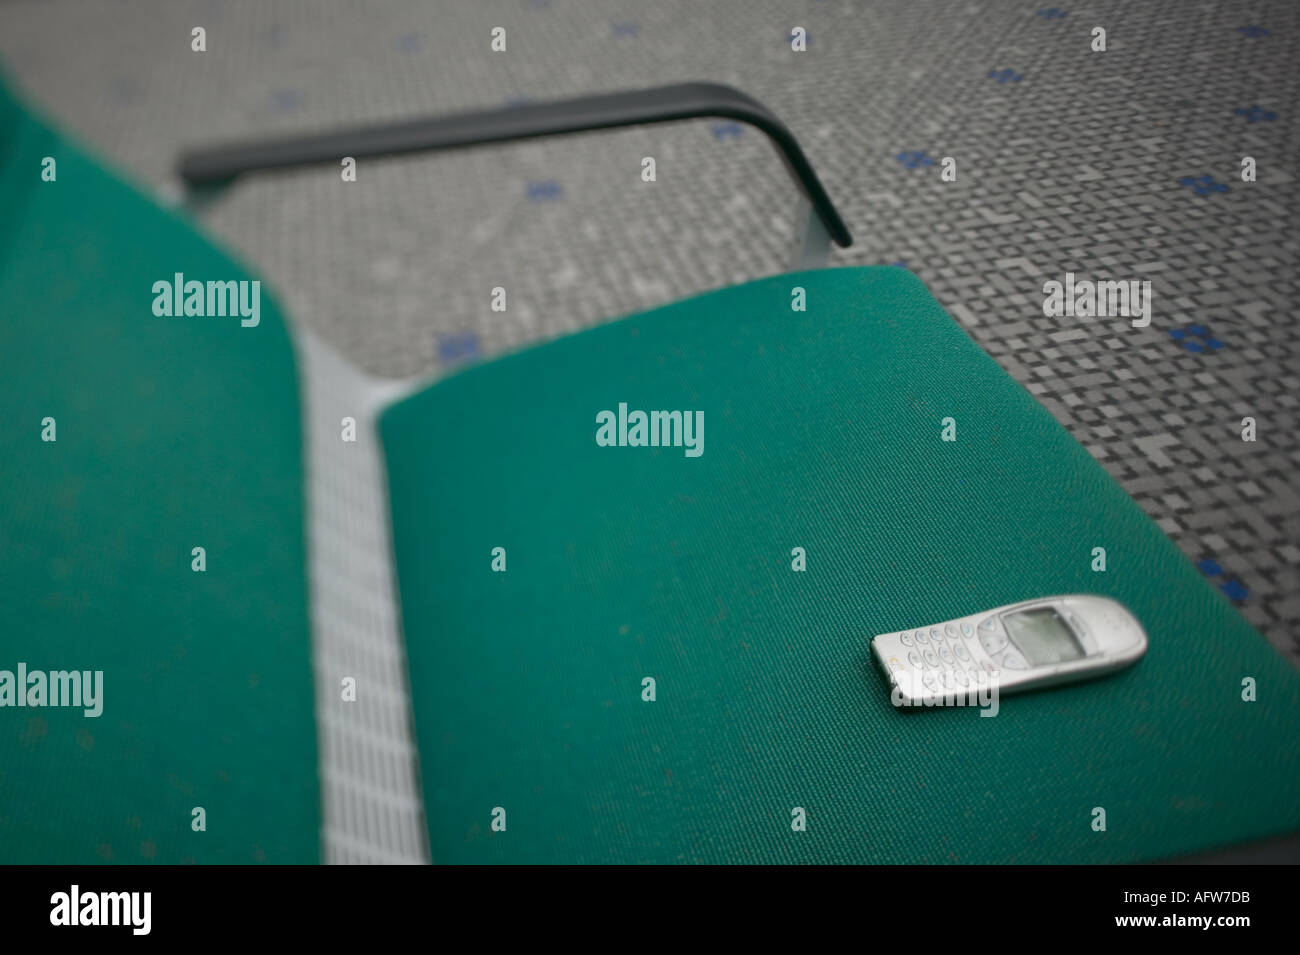 Mobile Phone left on chair at Hong Kongs Chek Lap Kok airport - Stock Image